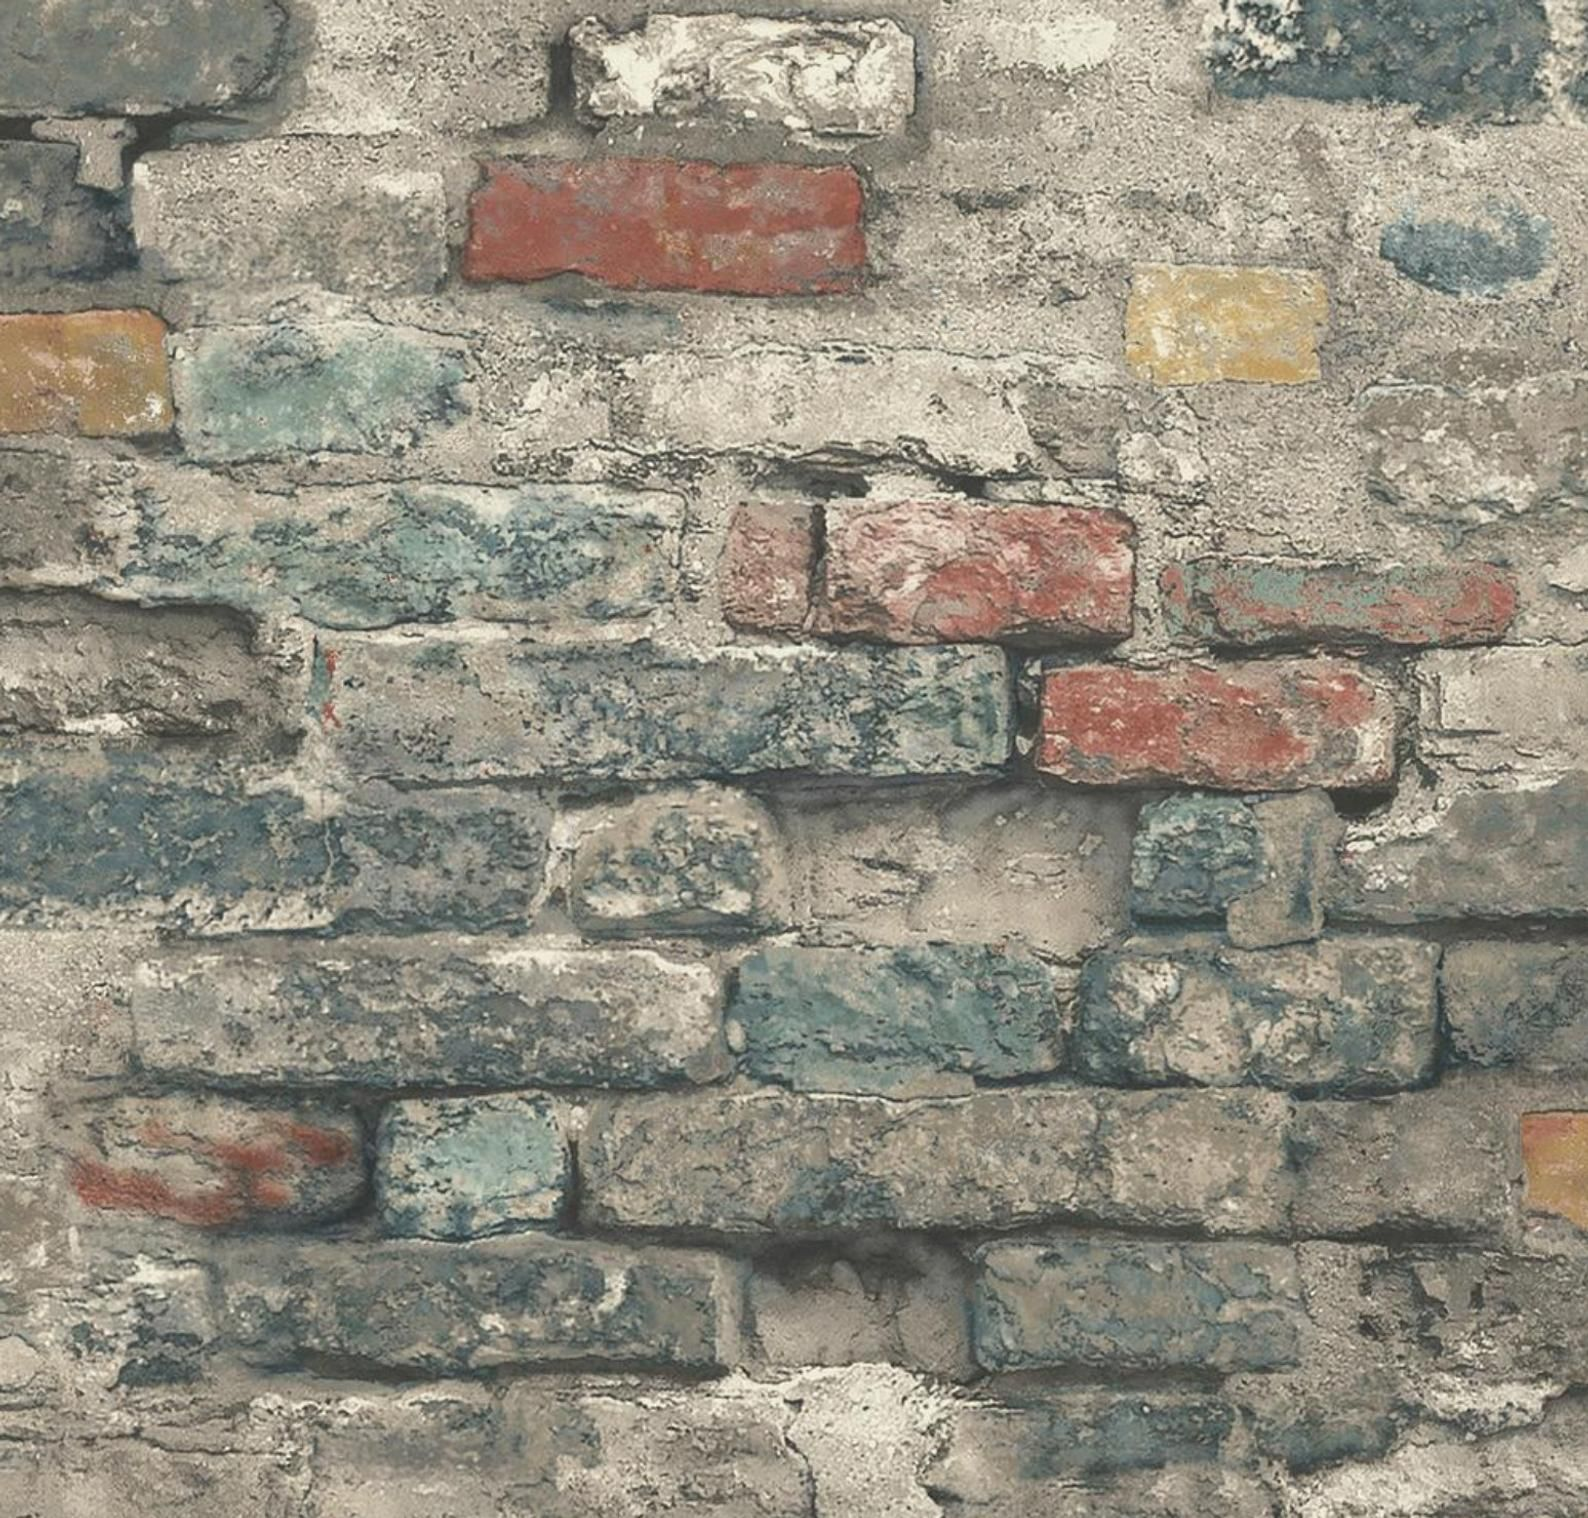 Old Repurposed Antique Brick Wallpaper Peel Stick Removable Etsy In 2020 Peel And Stick Wallpaper Brick Wallpaper Antique Brick